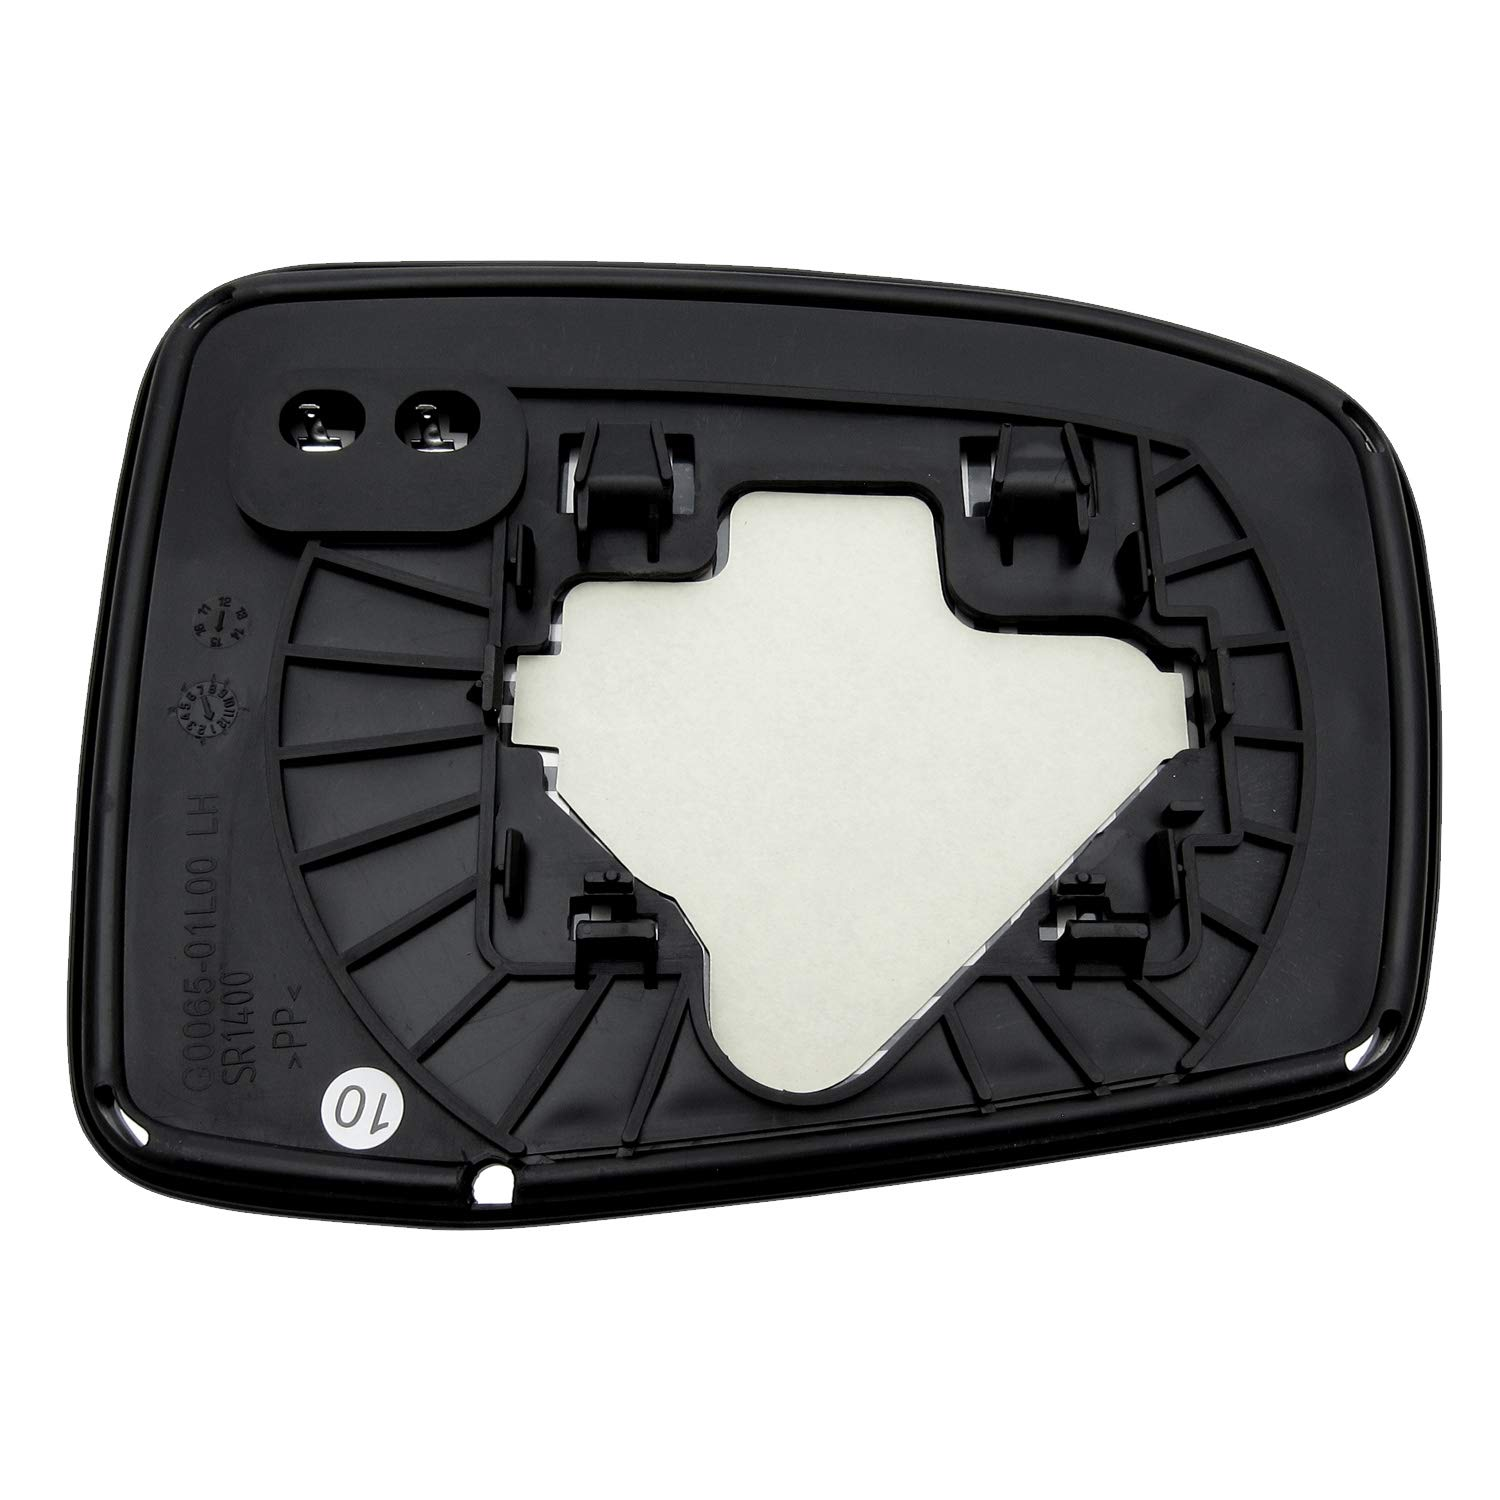 New Replacement Driver Side Mirror Heated Glass W Backing Compatible With 2005-2010 Honda Odyssey Sold By Rugged TUFF